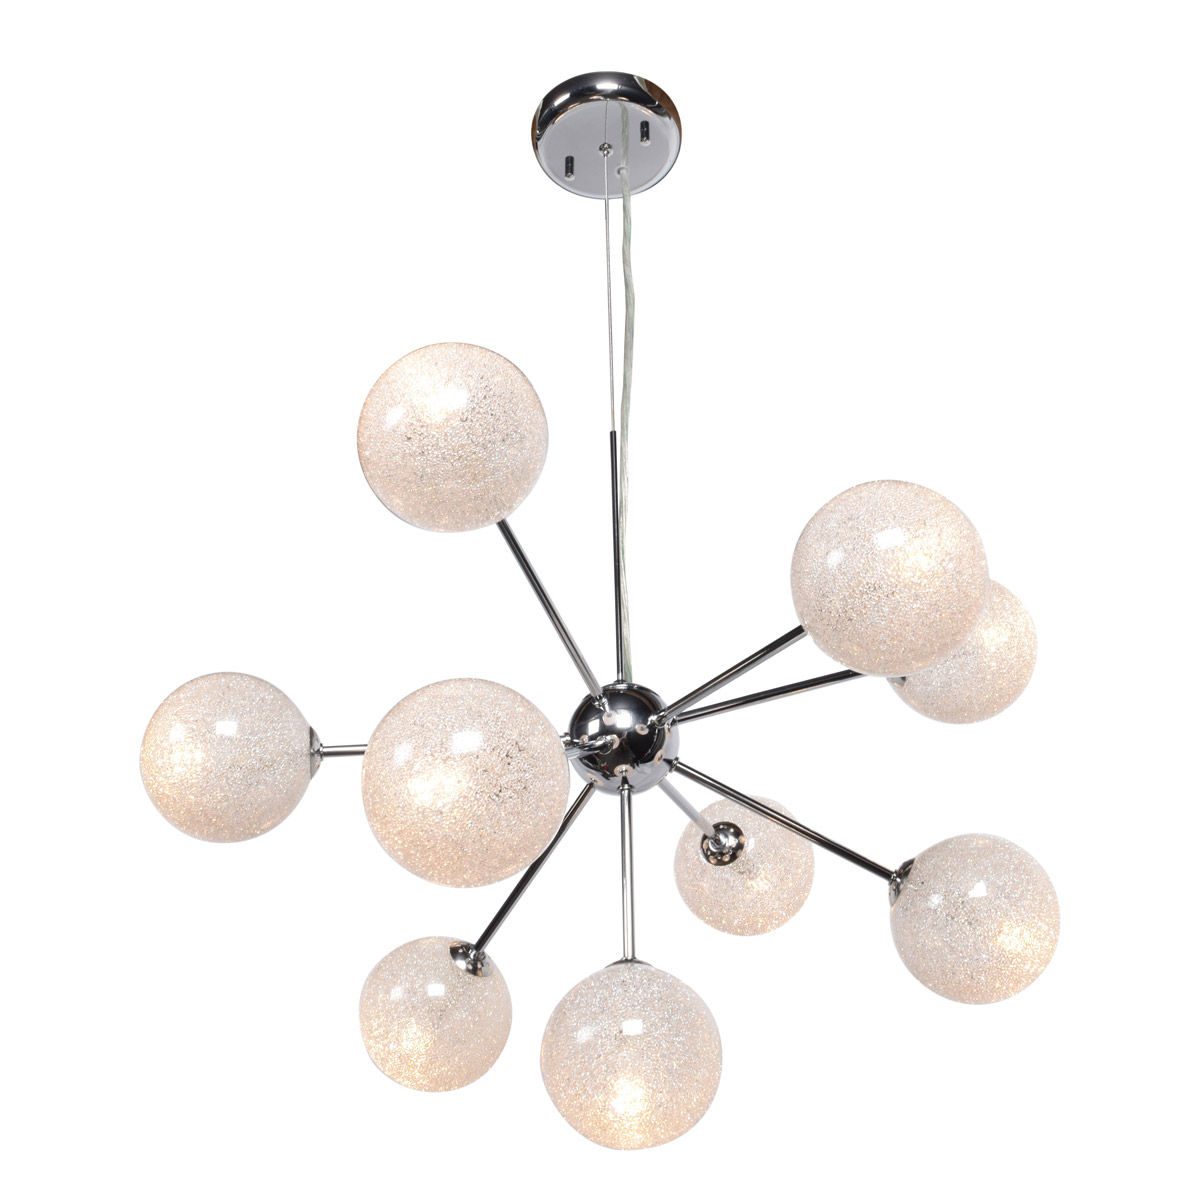 Opulence 10 Light 23 inch Chrome Chandelier Access lighting Ceiling Light